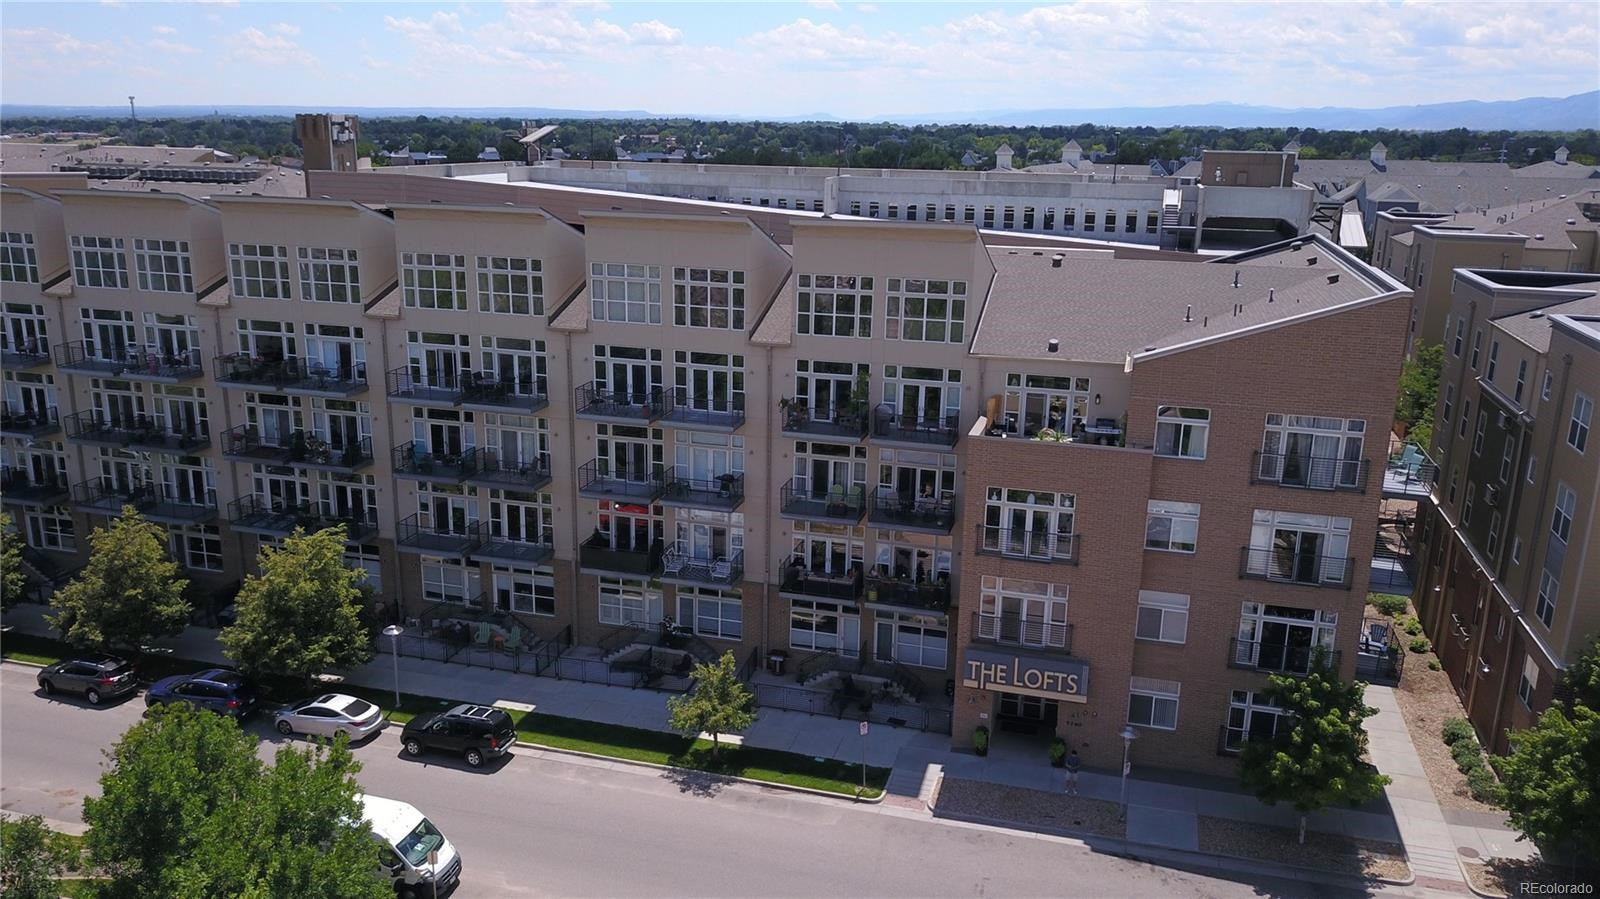 MLS# 5941292 - 1 - 7240 W Custer Avenue #409, Lakewood, CO 80226